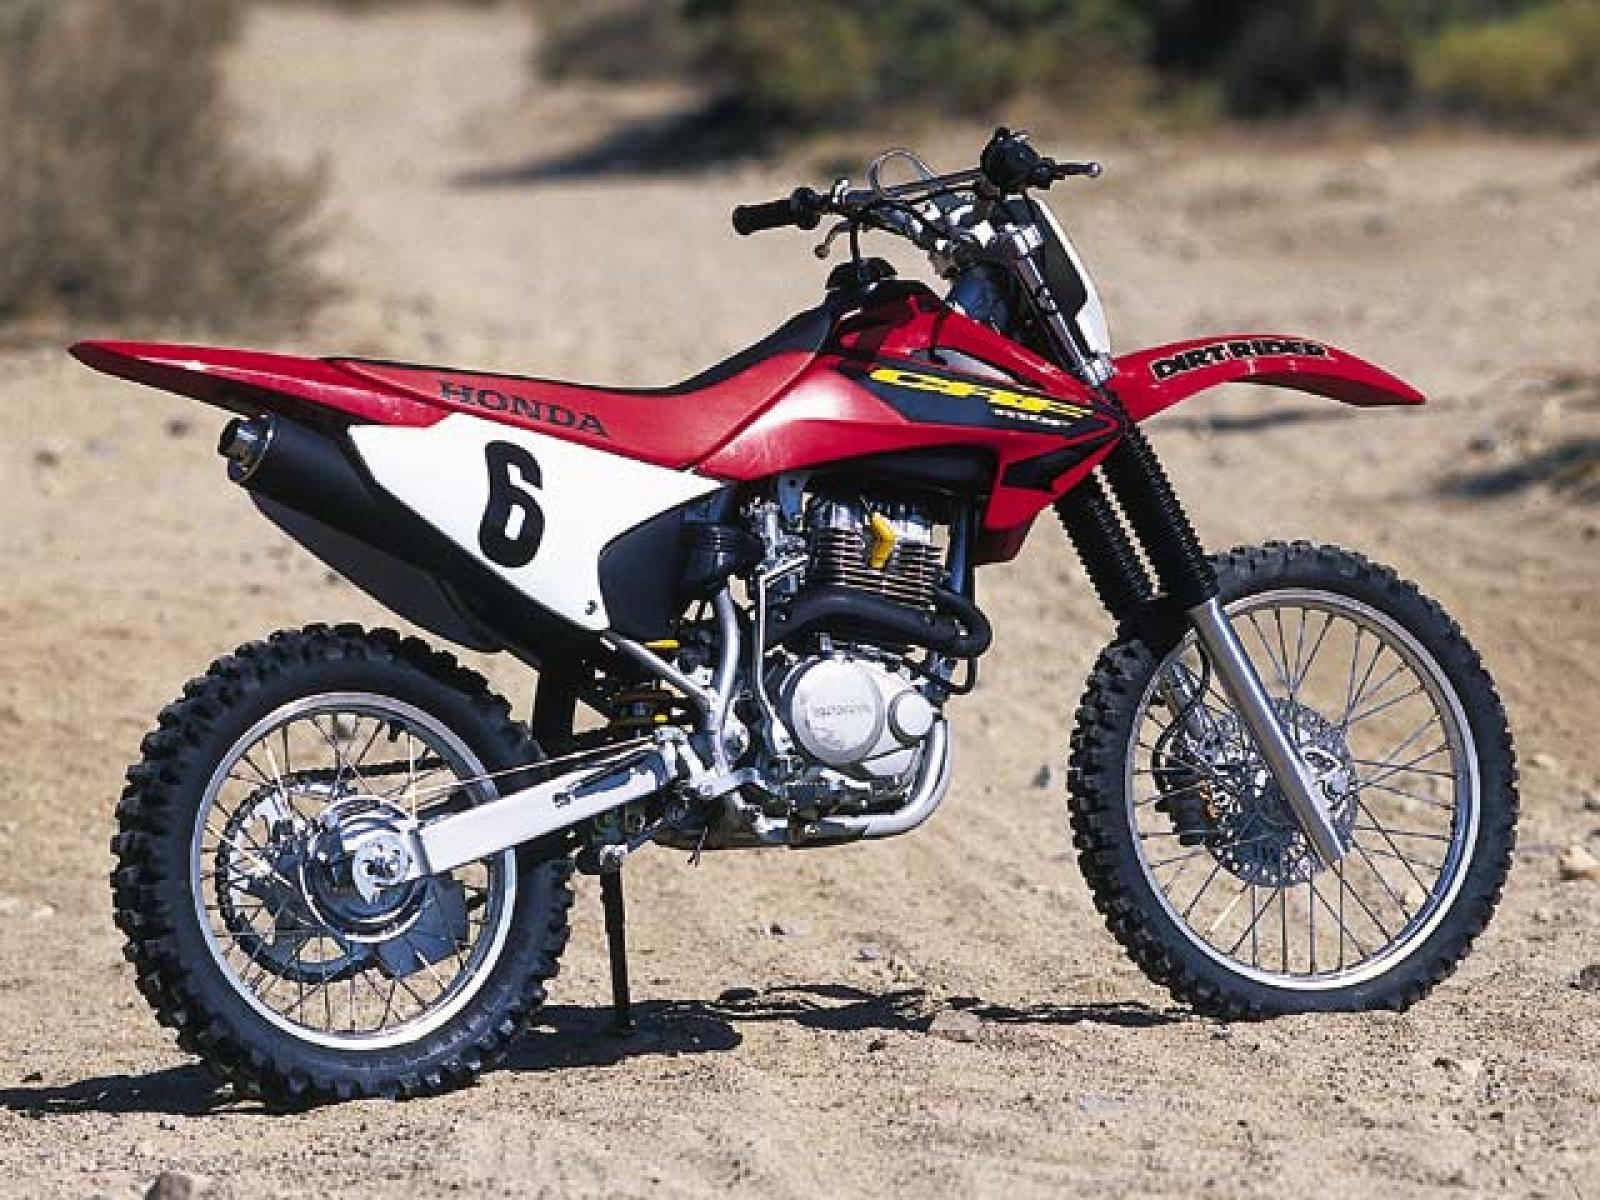 2010 Honda Crf150f Crf 150 Dirt Bikes 7 800 1024 1280 1600 Origin